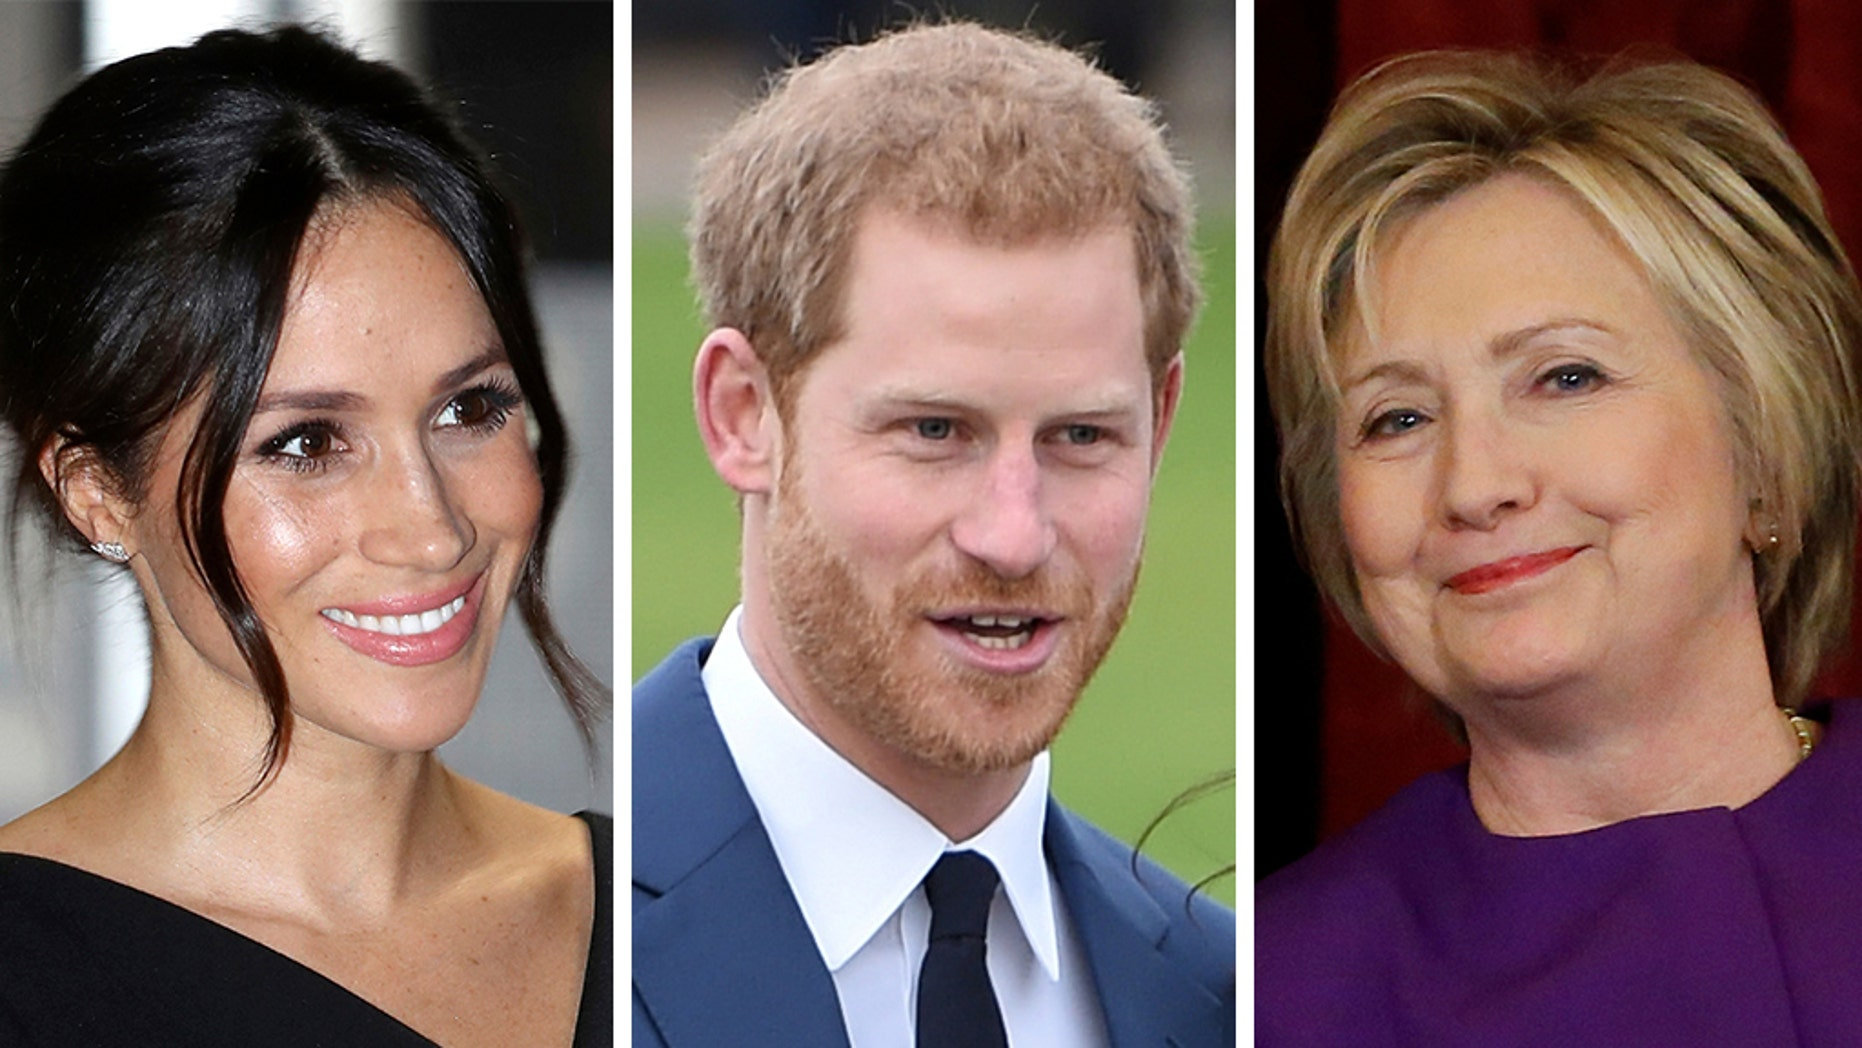 Meghan Markle and Prince Harry have hired Hillary Clinton's former presidential debate comparison confidant to conduct their communications team.